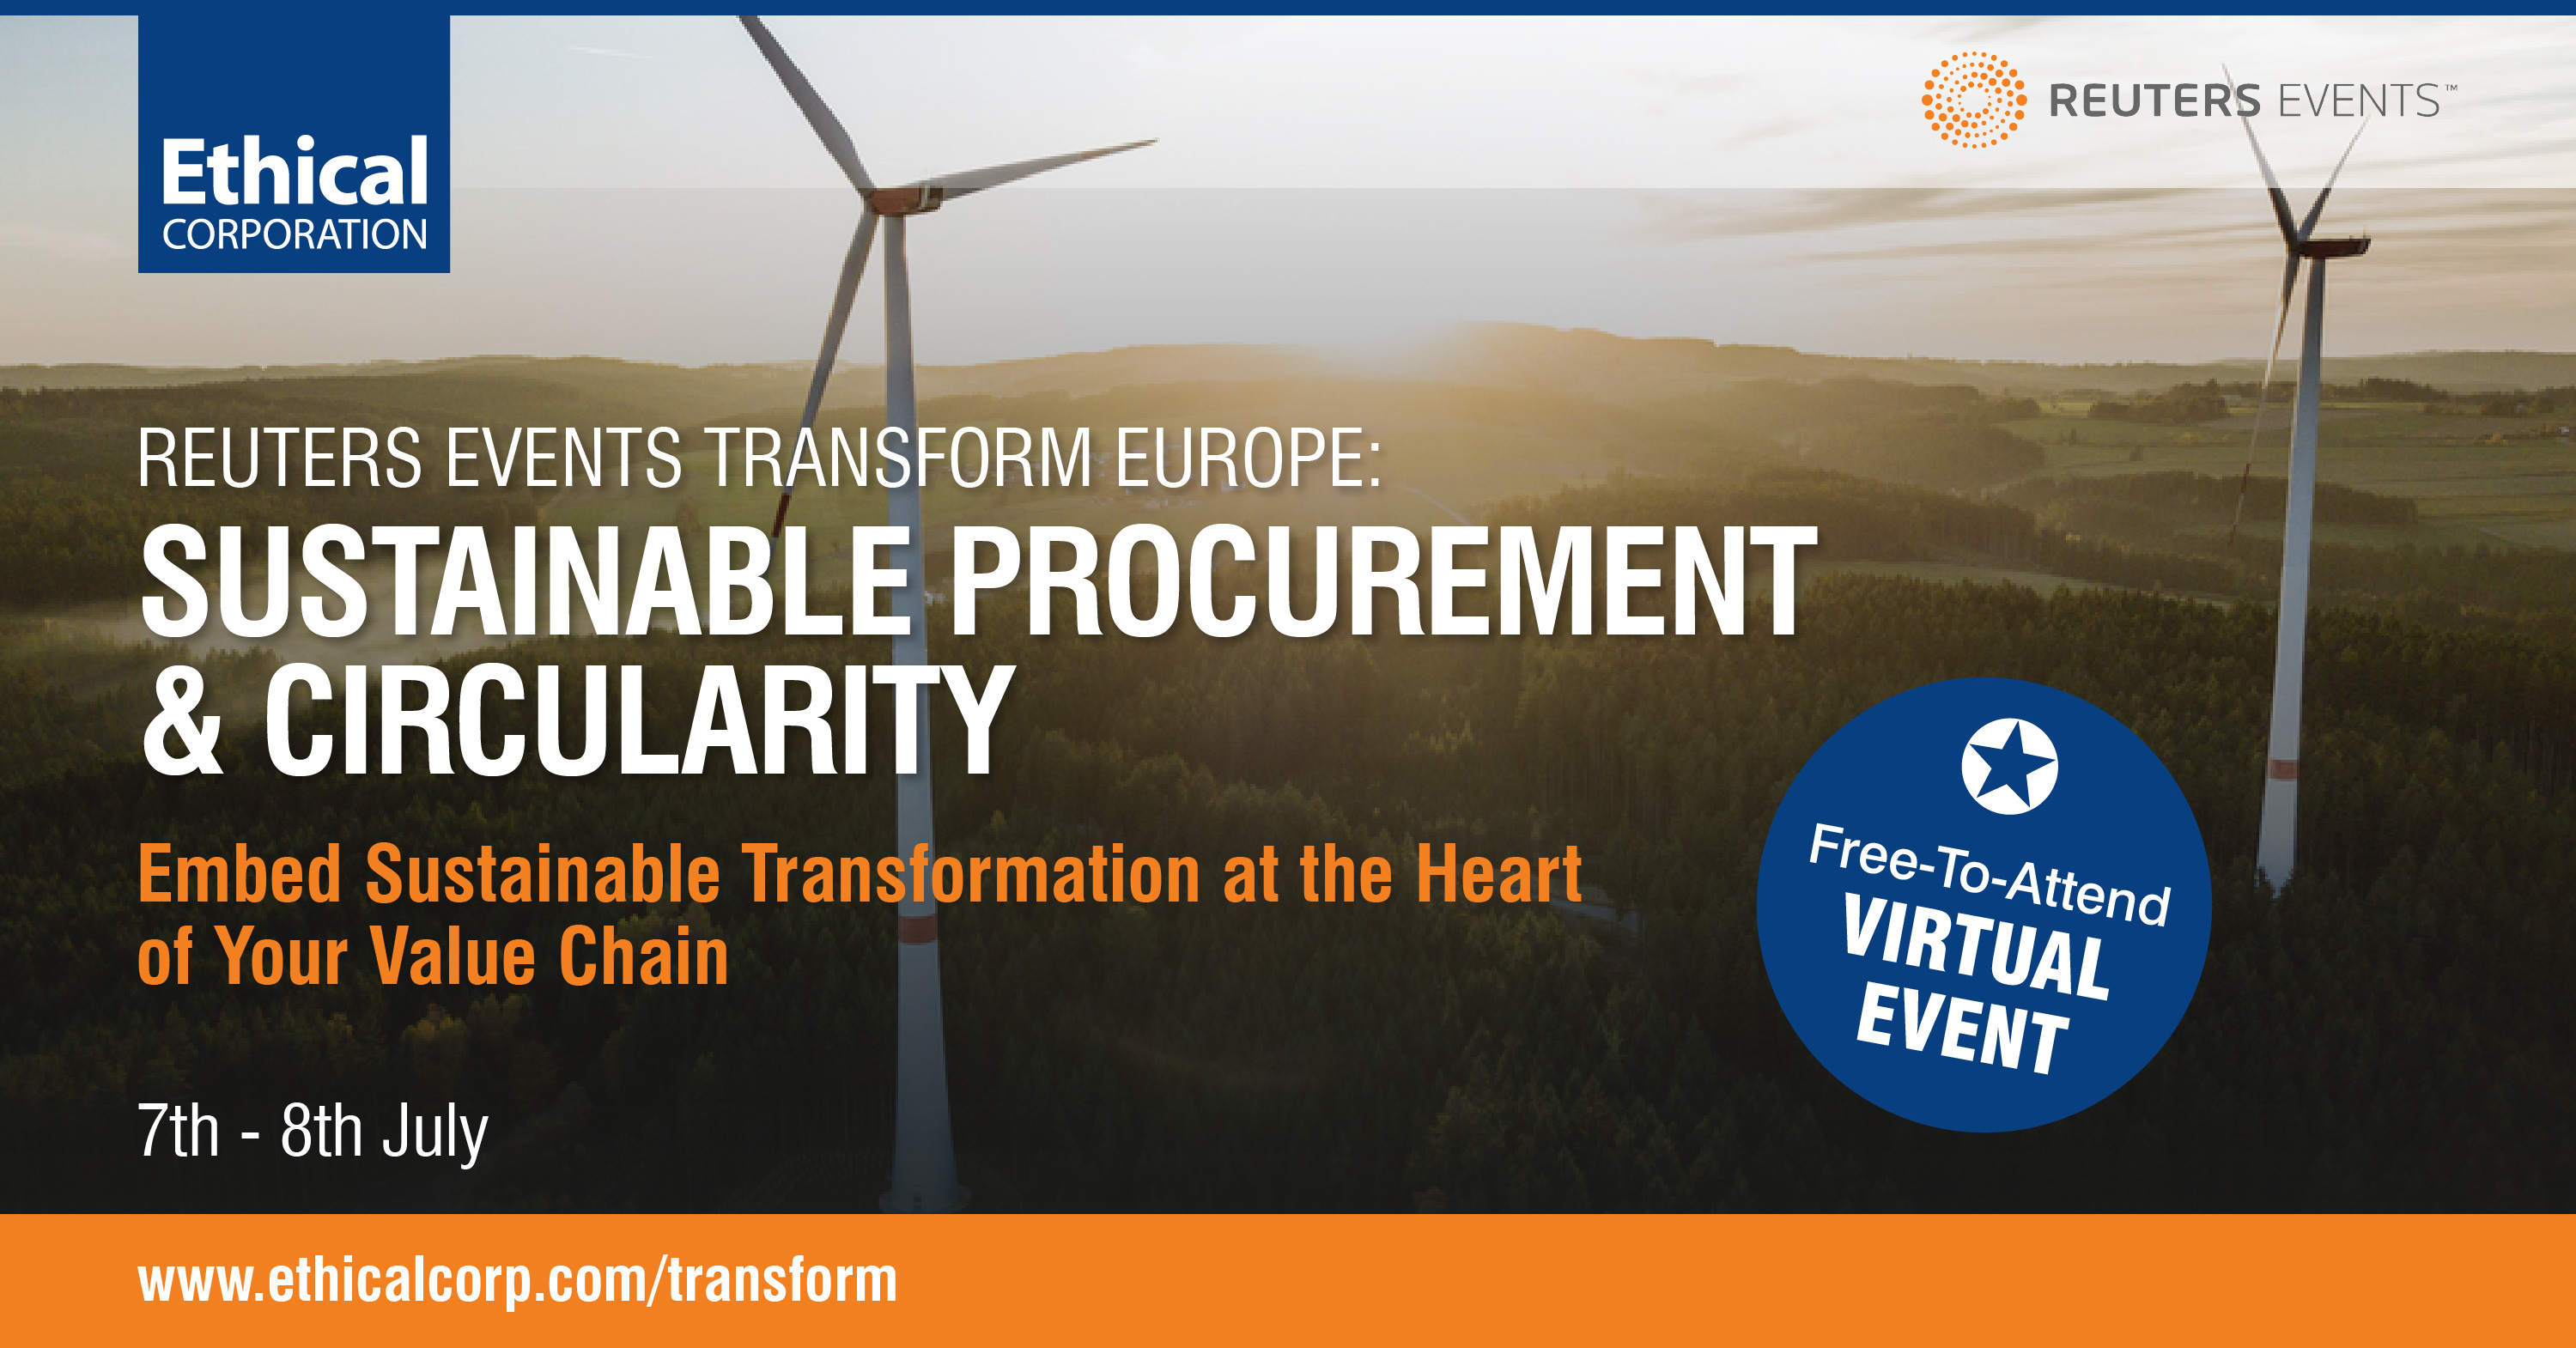 Transform Europe Virtual Series organized by Reuters Events